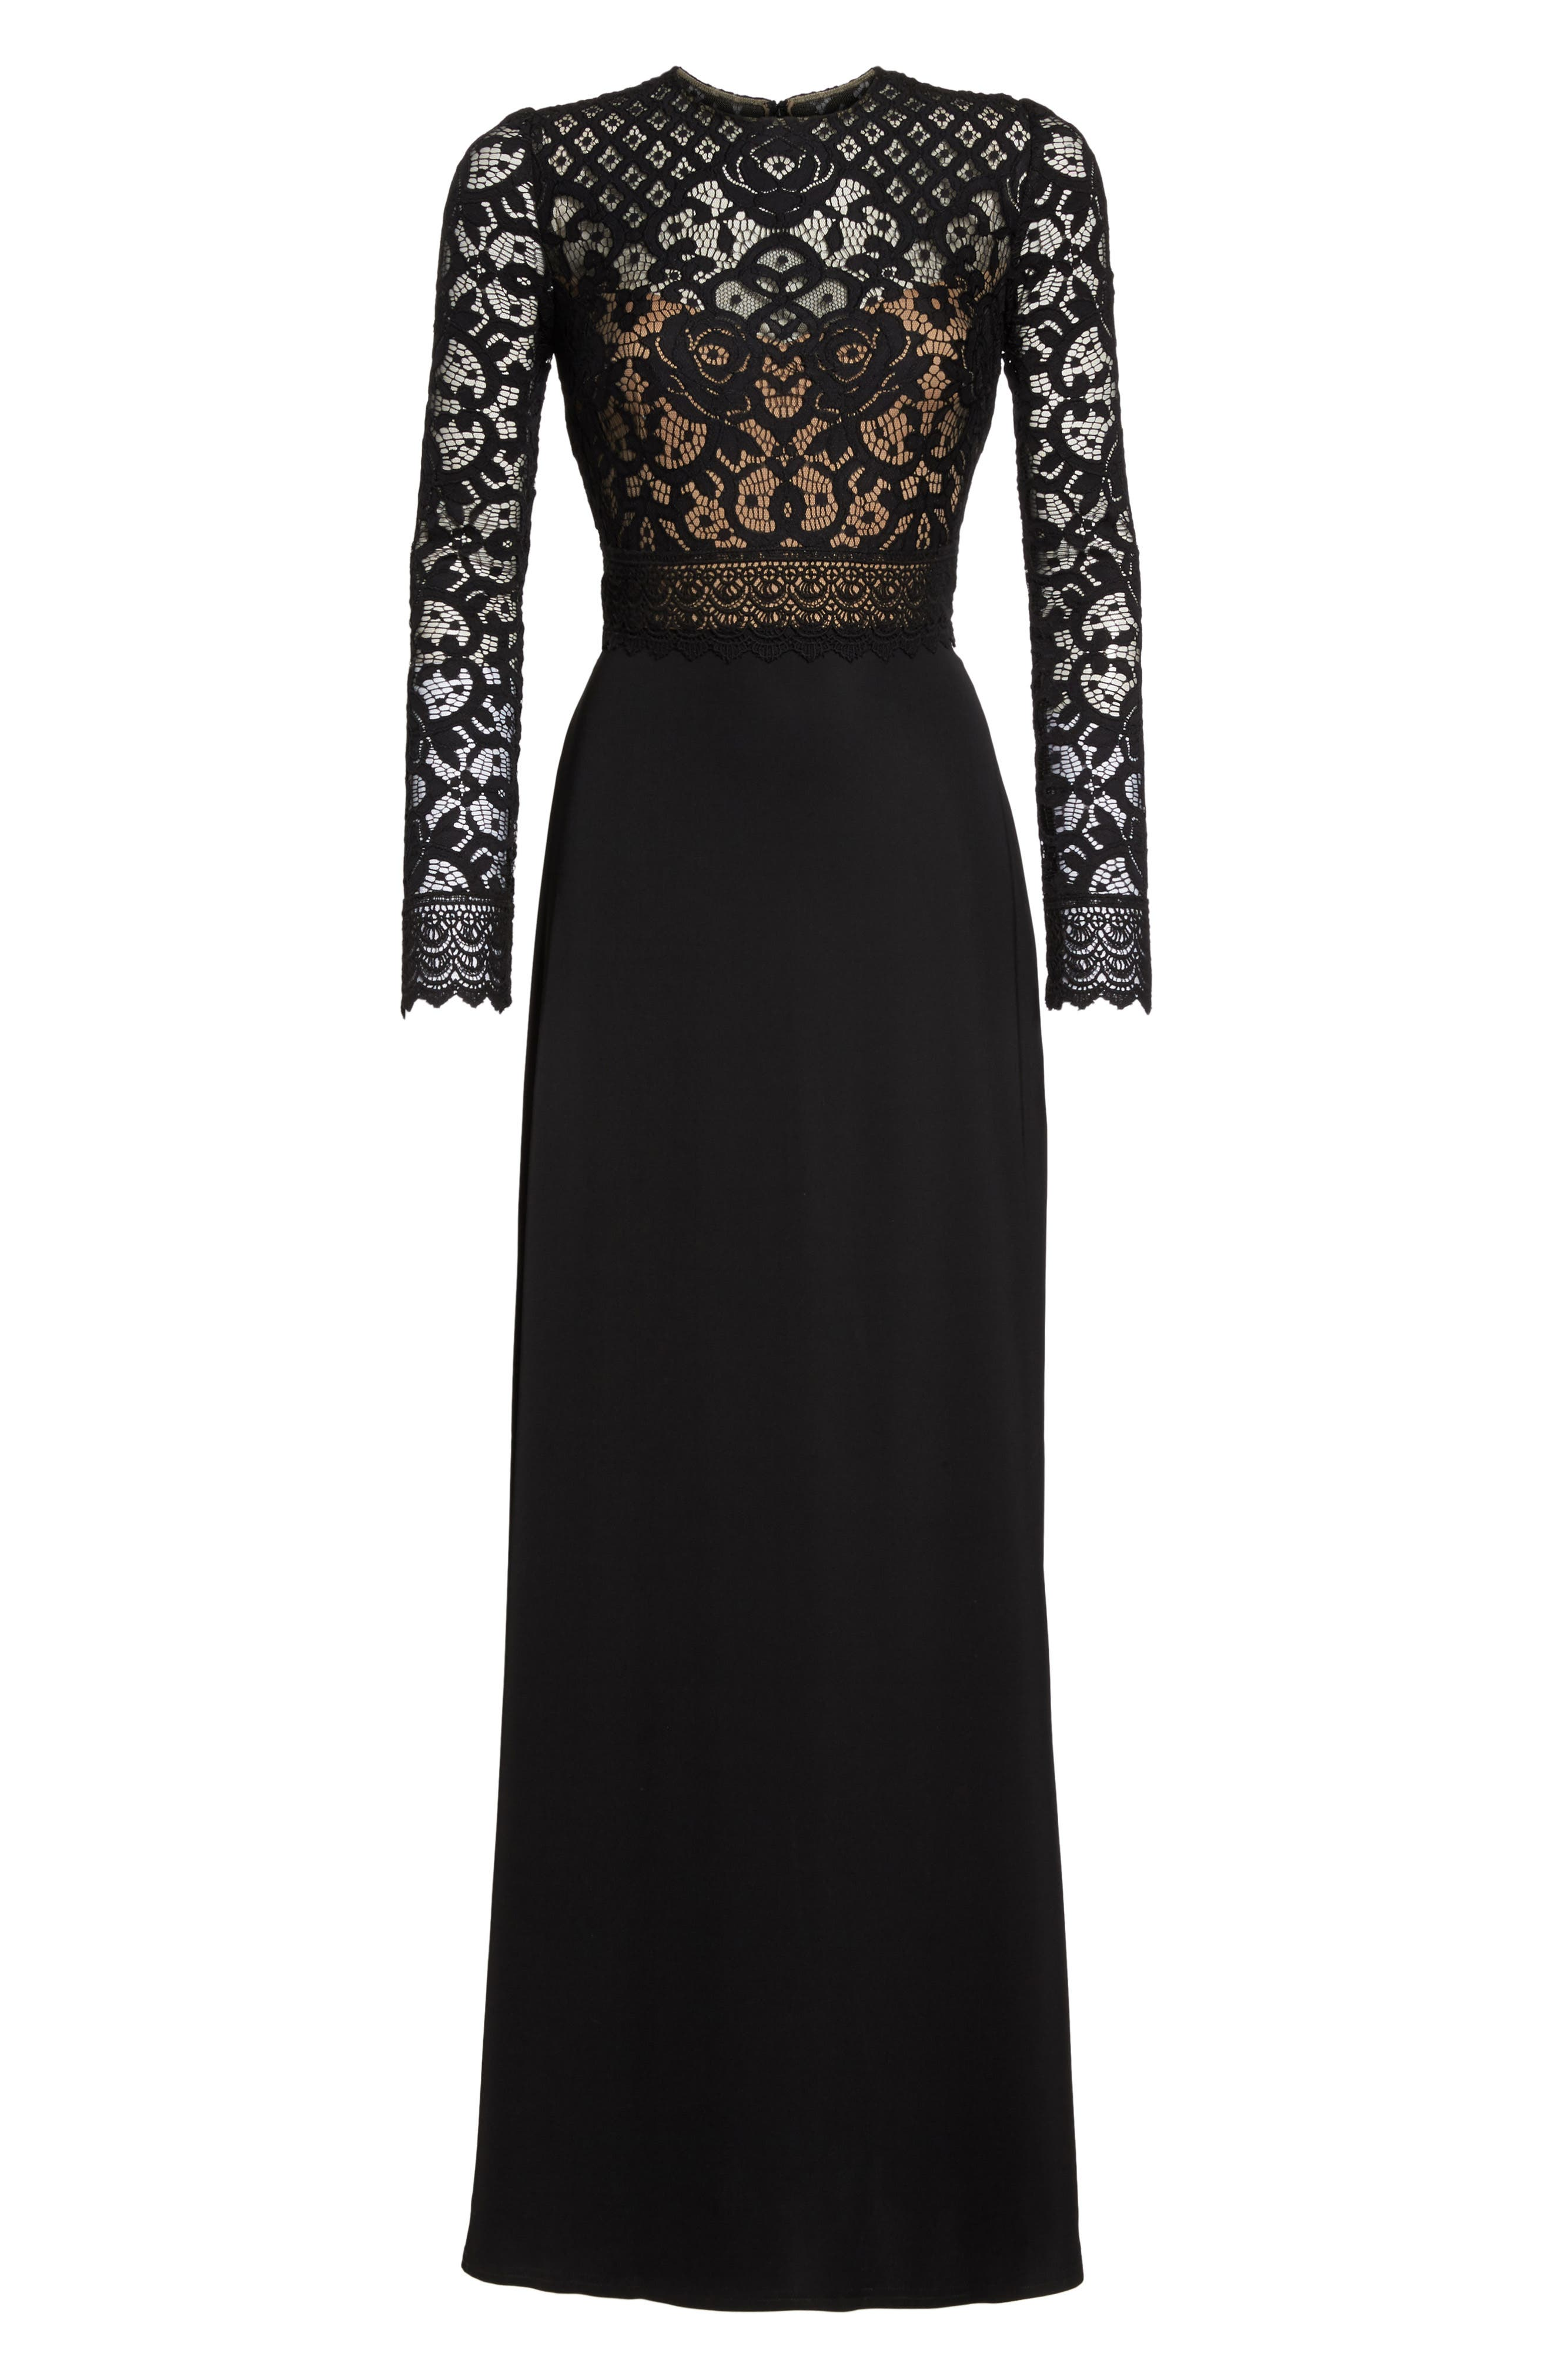 Lace & Crepe Gown,                             Alternate thumbnail 6, color,                             Black/ Nude